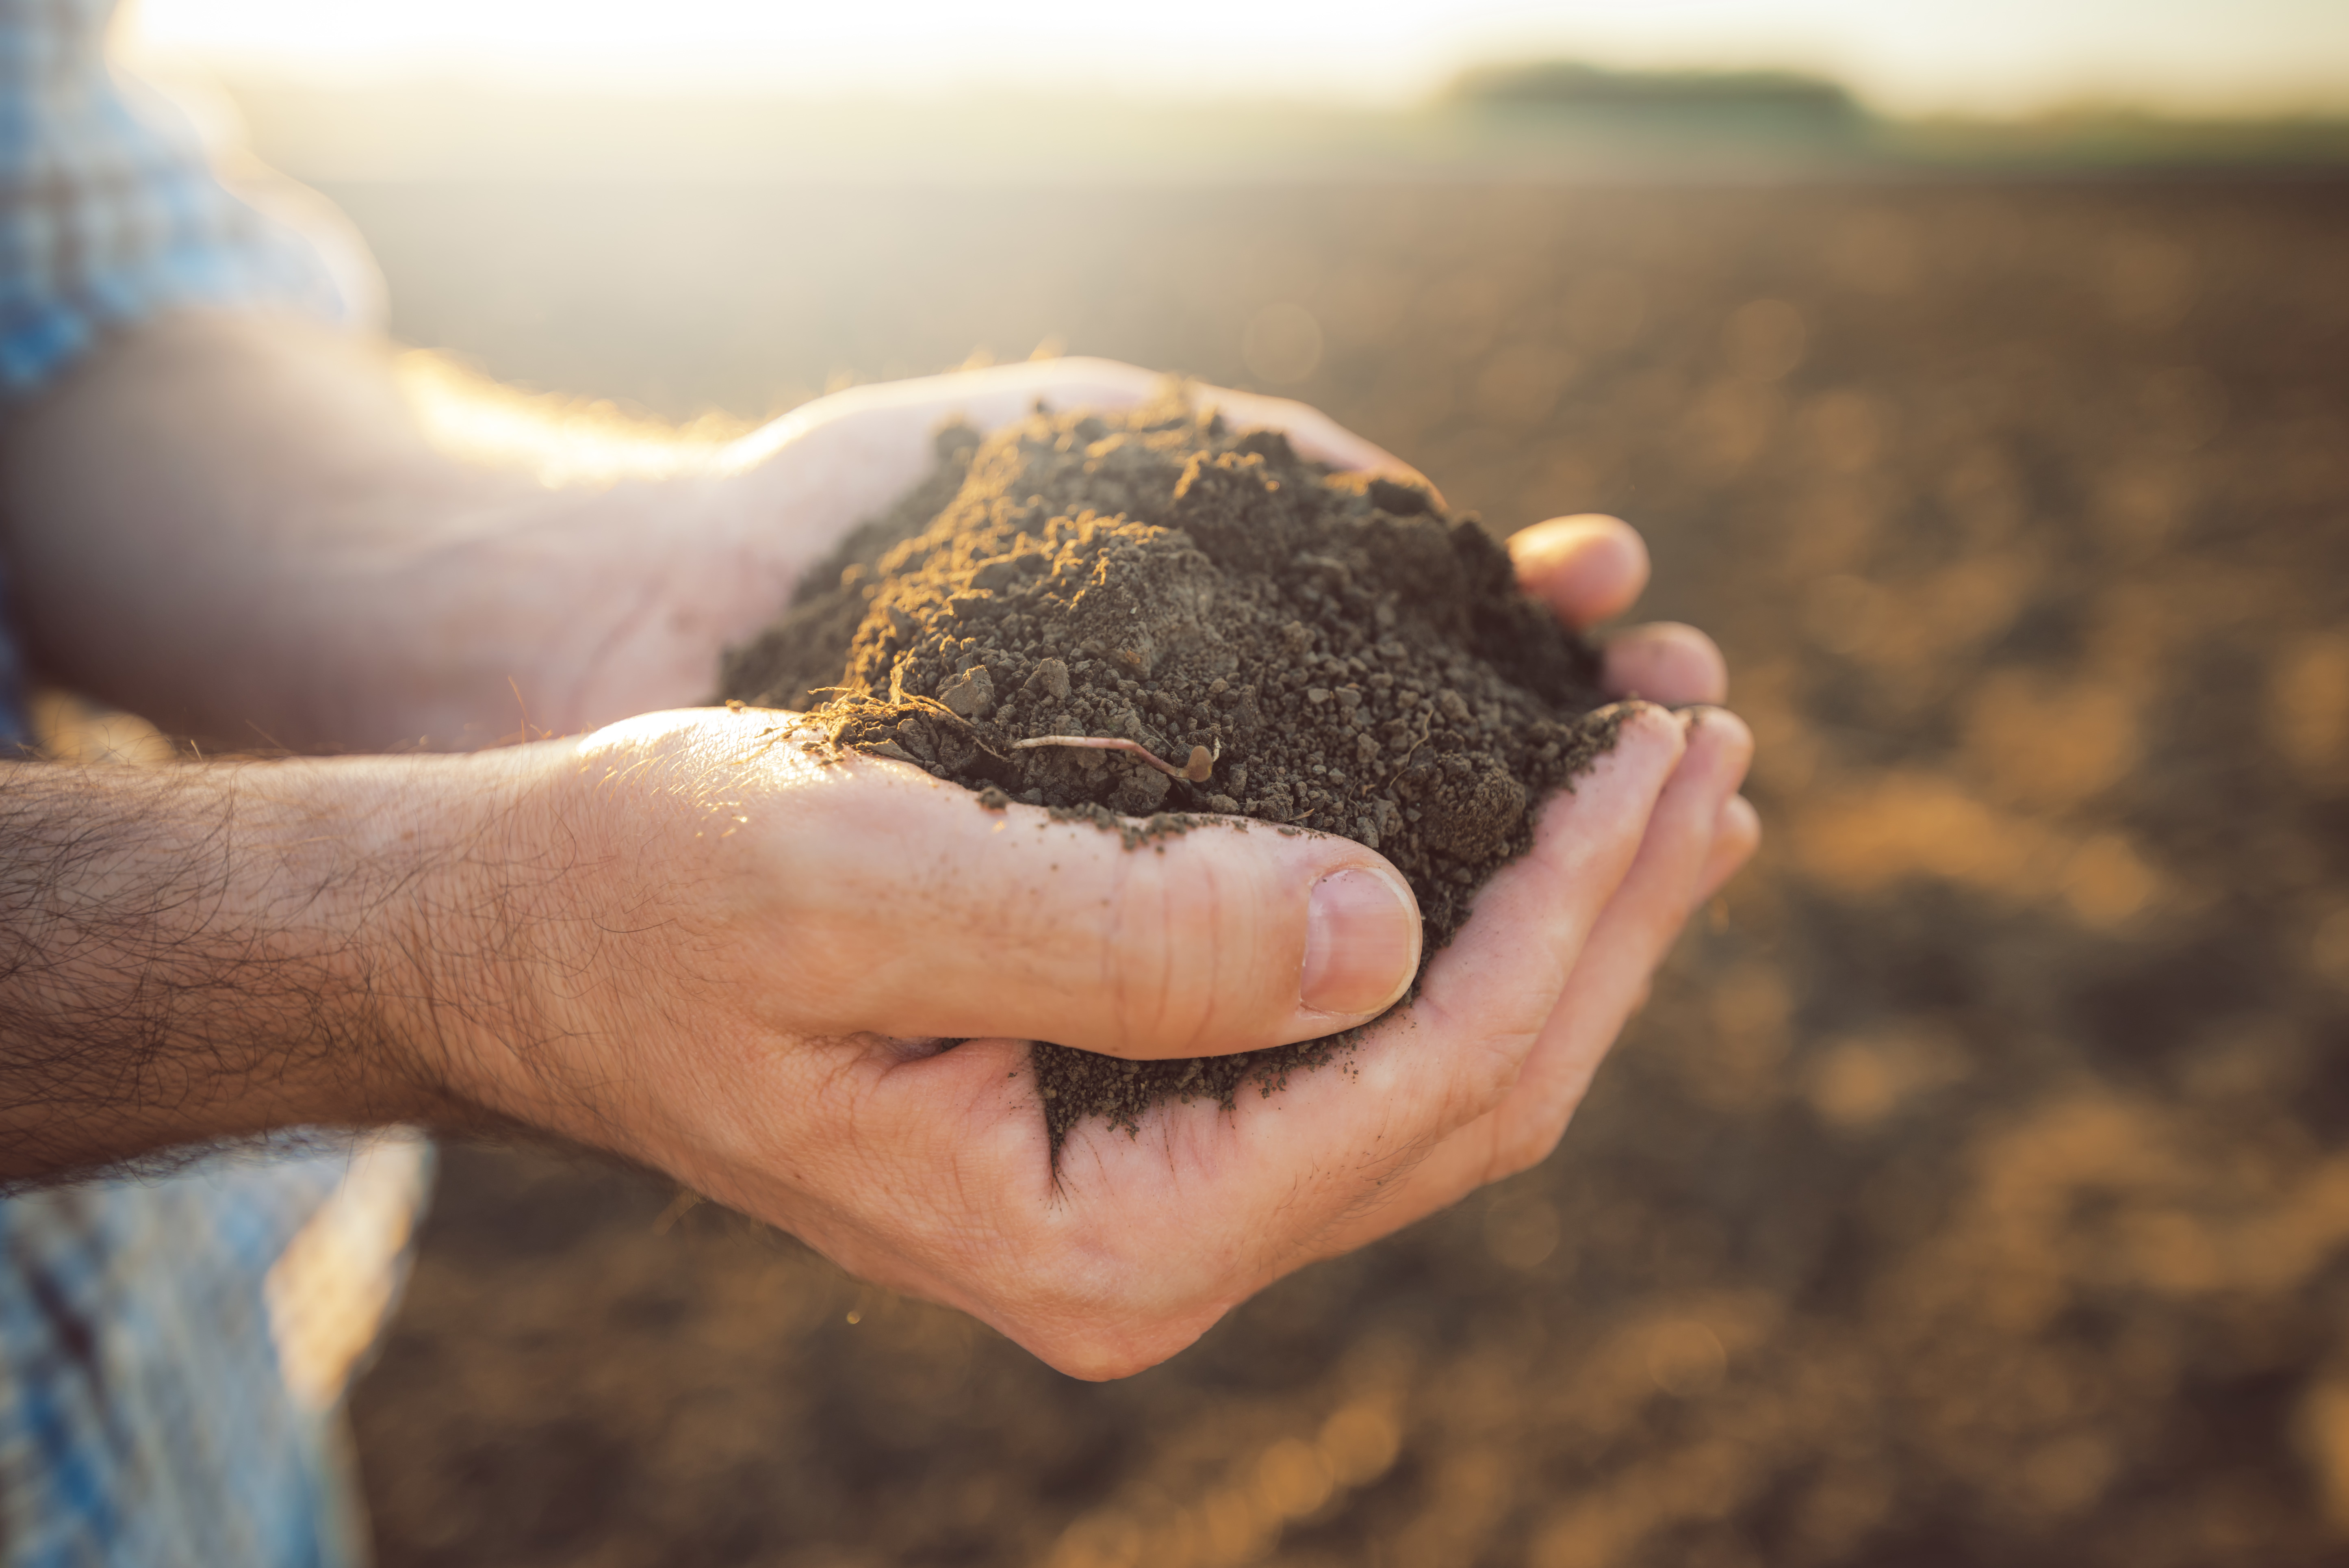 land and soil - widsom of nature - lessons from nature - lessons from soil - produce - health of soil